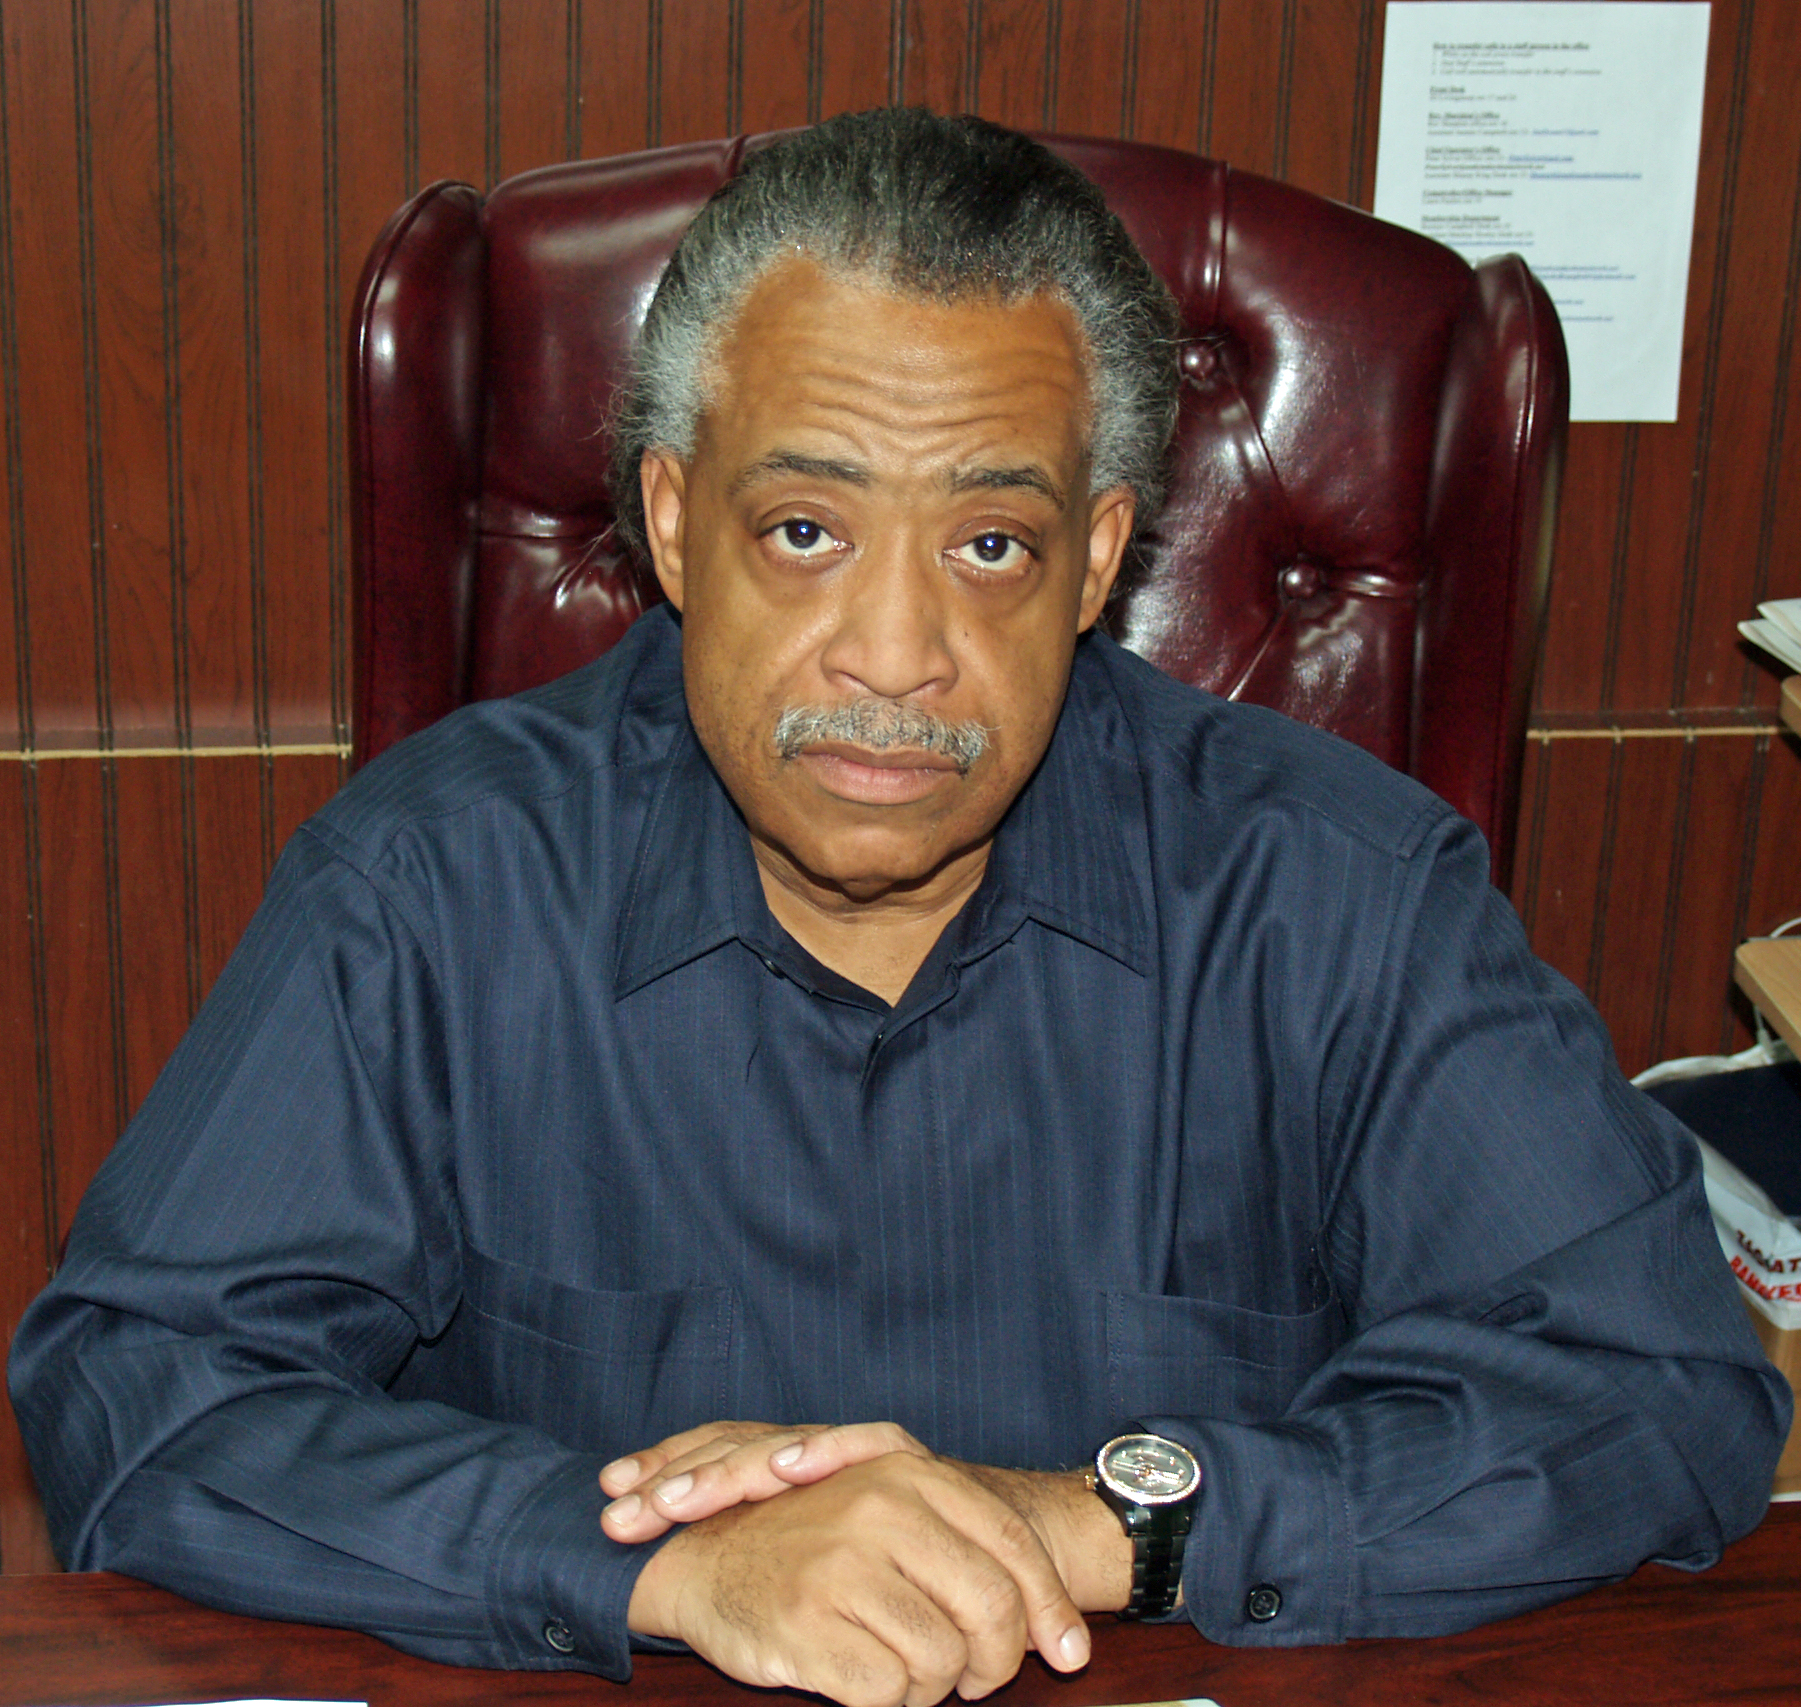 Al_Sharpton_by_David_Shankbone.jpg